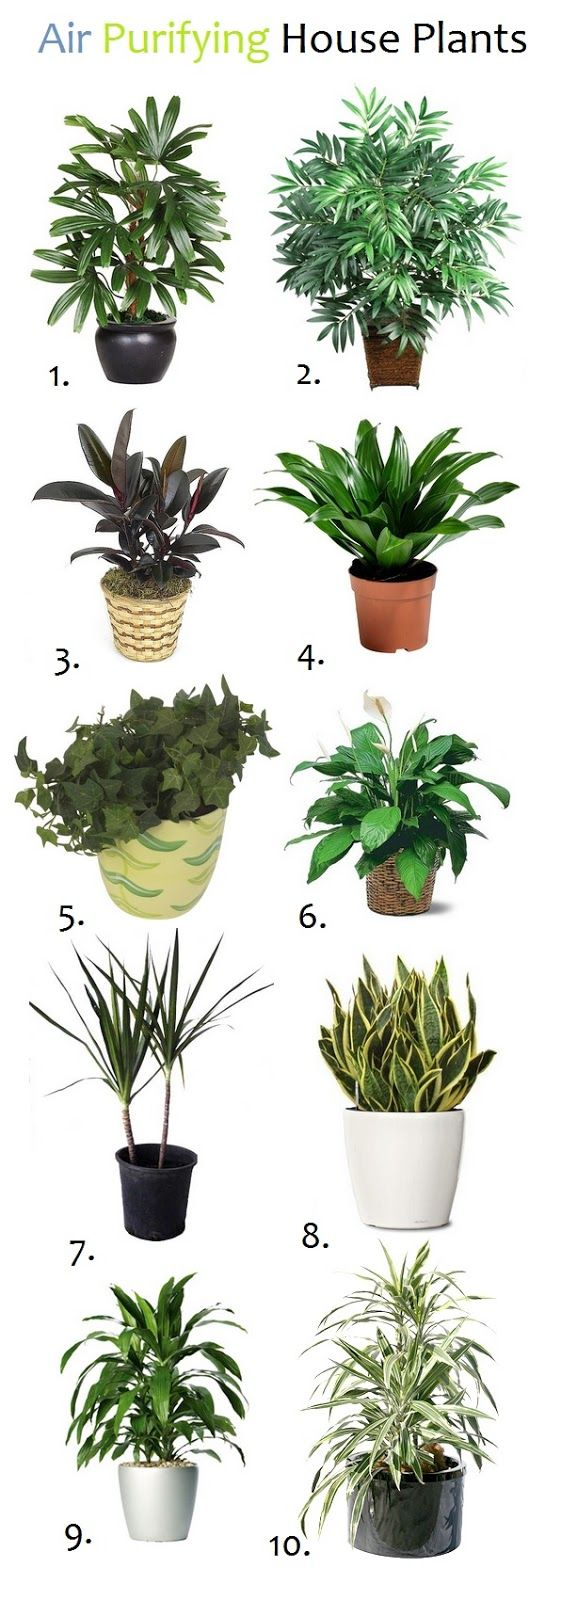 Alternative Gardning: 10 Air Purifying House Plants